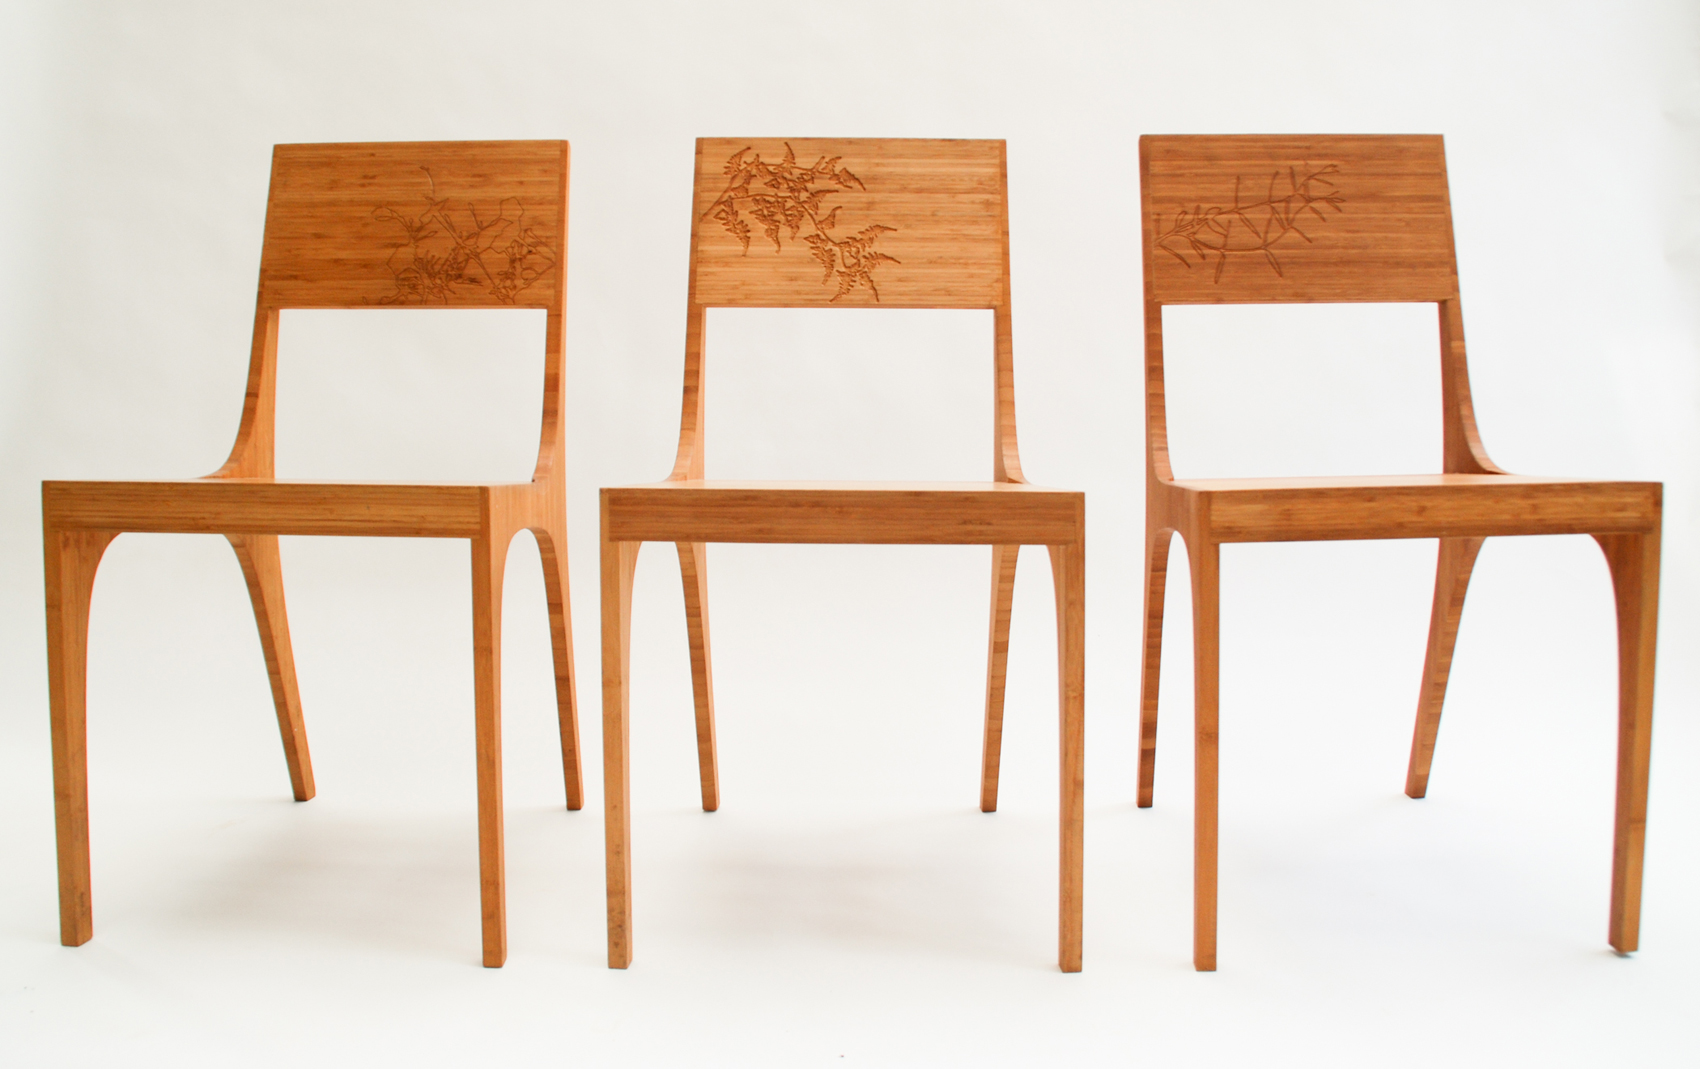 Isometric Chairs Bamboo with Engraving